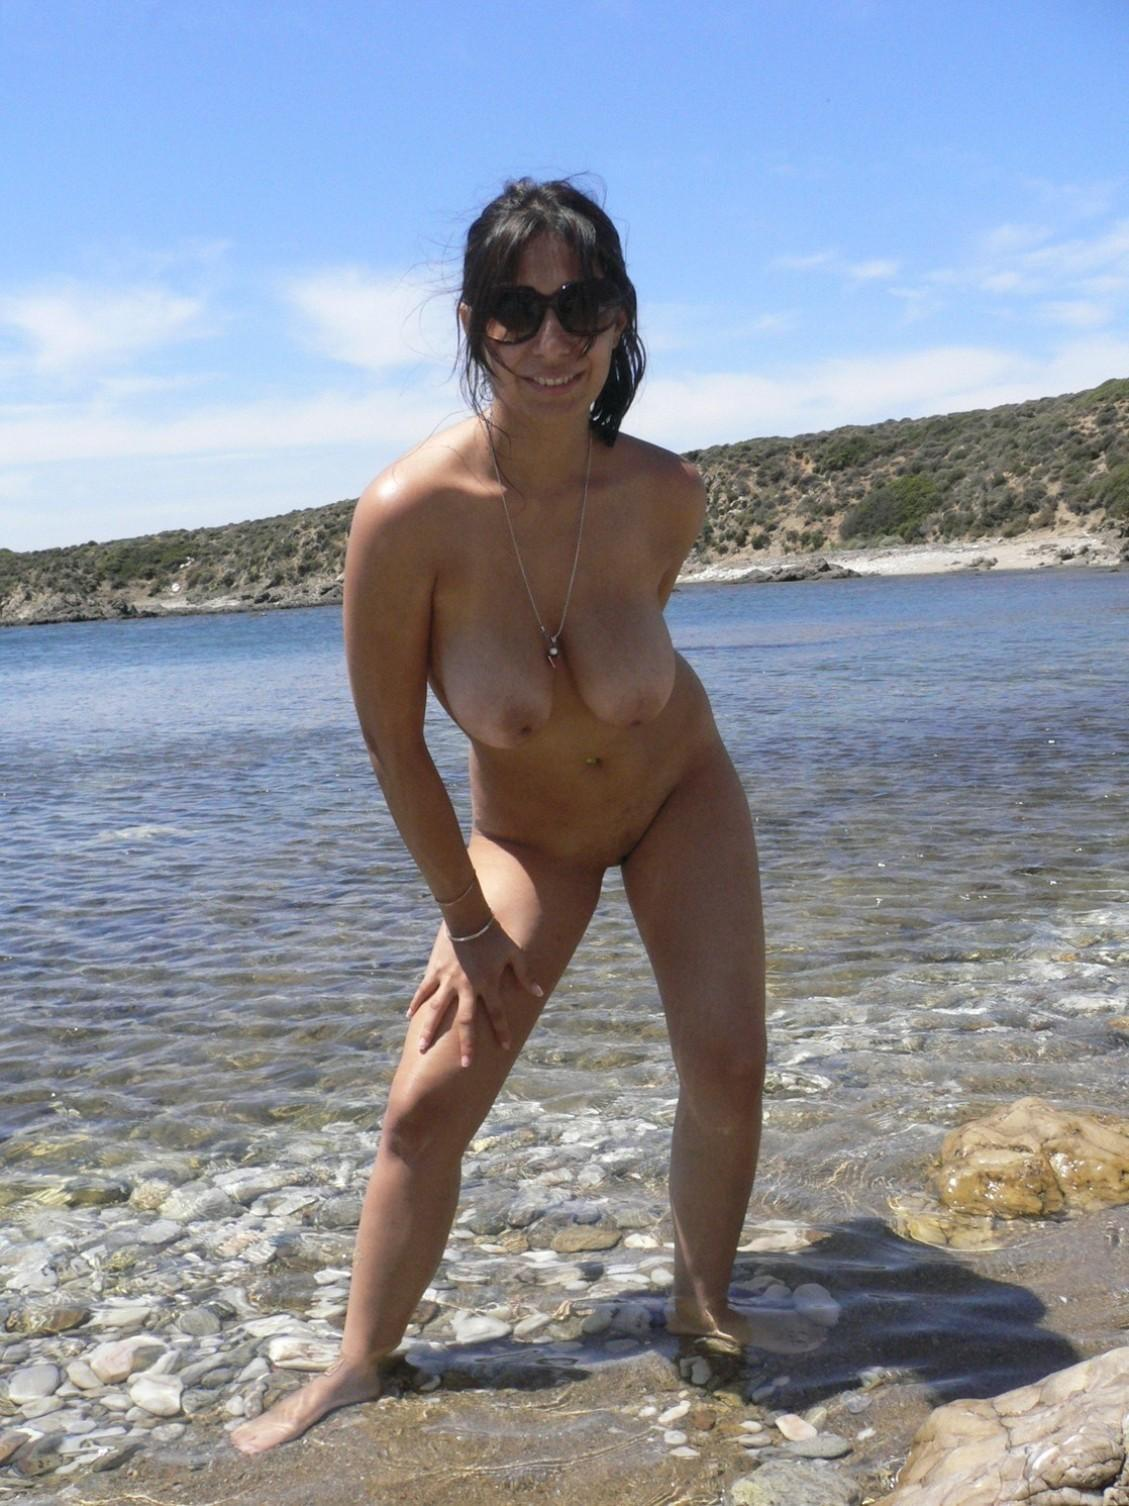 Italian amateur babe with a horny look and natural tits exposes her pussy on the beach. Nice Italian Milf removes her swimsuit after wading out into the sea